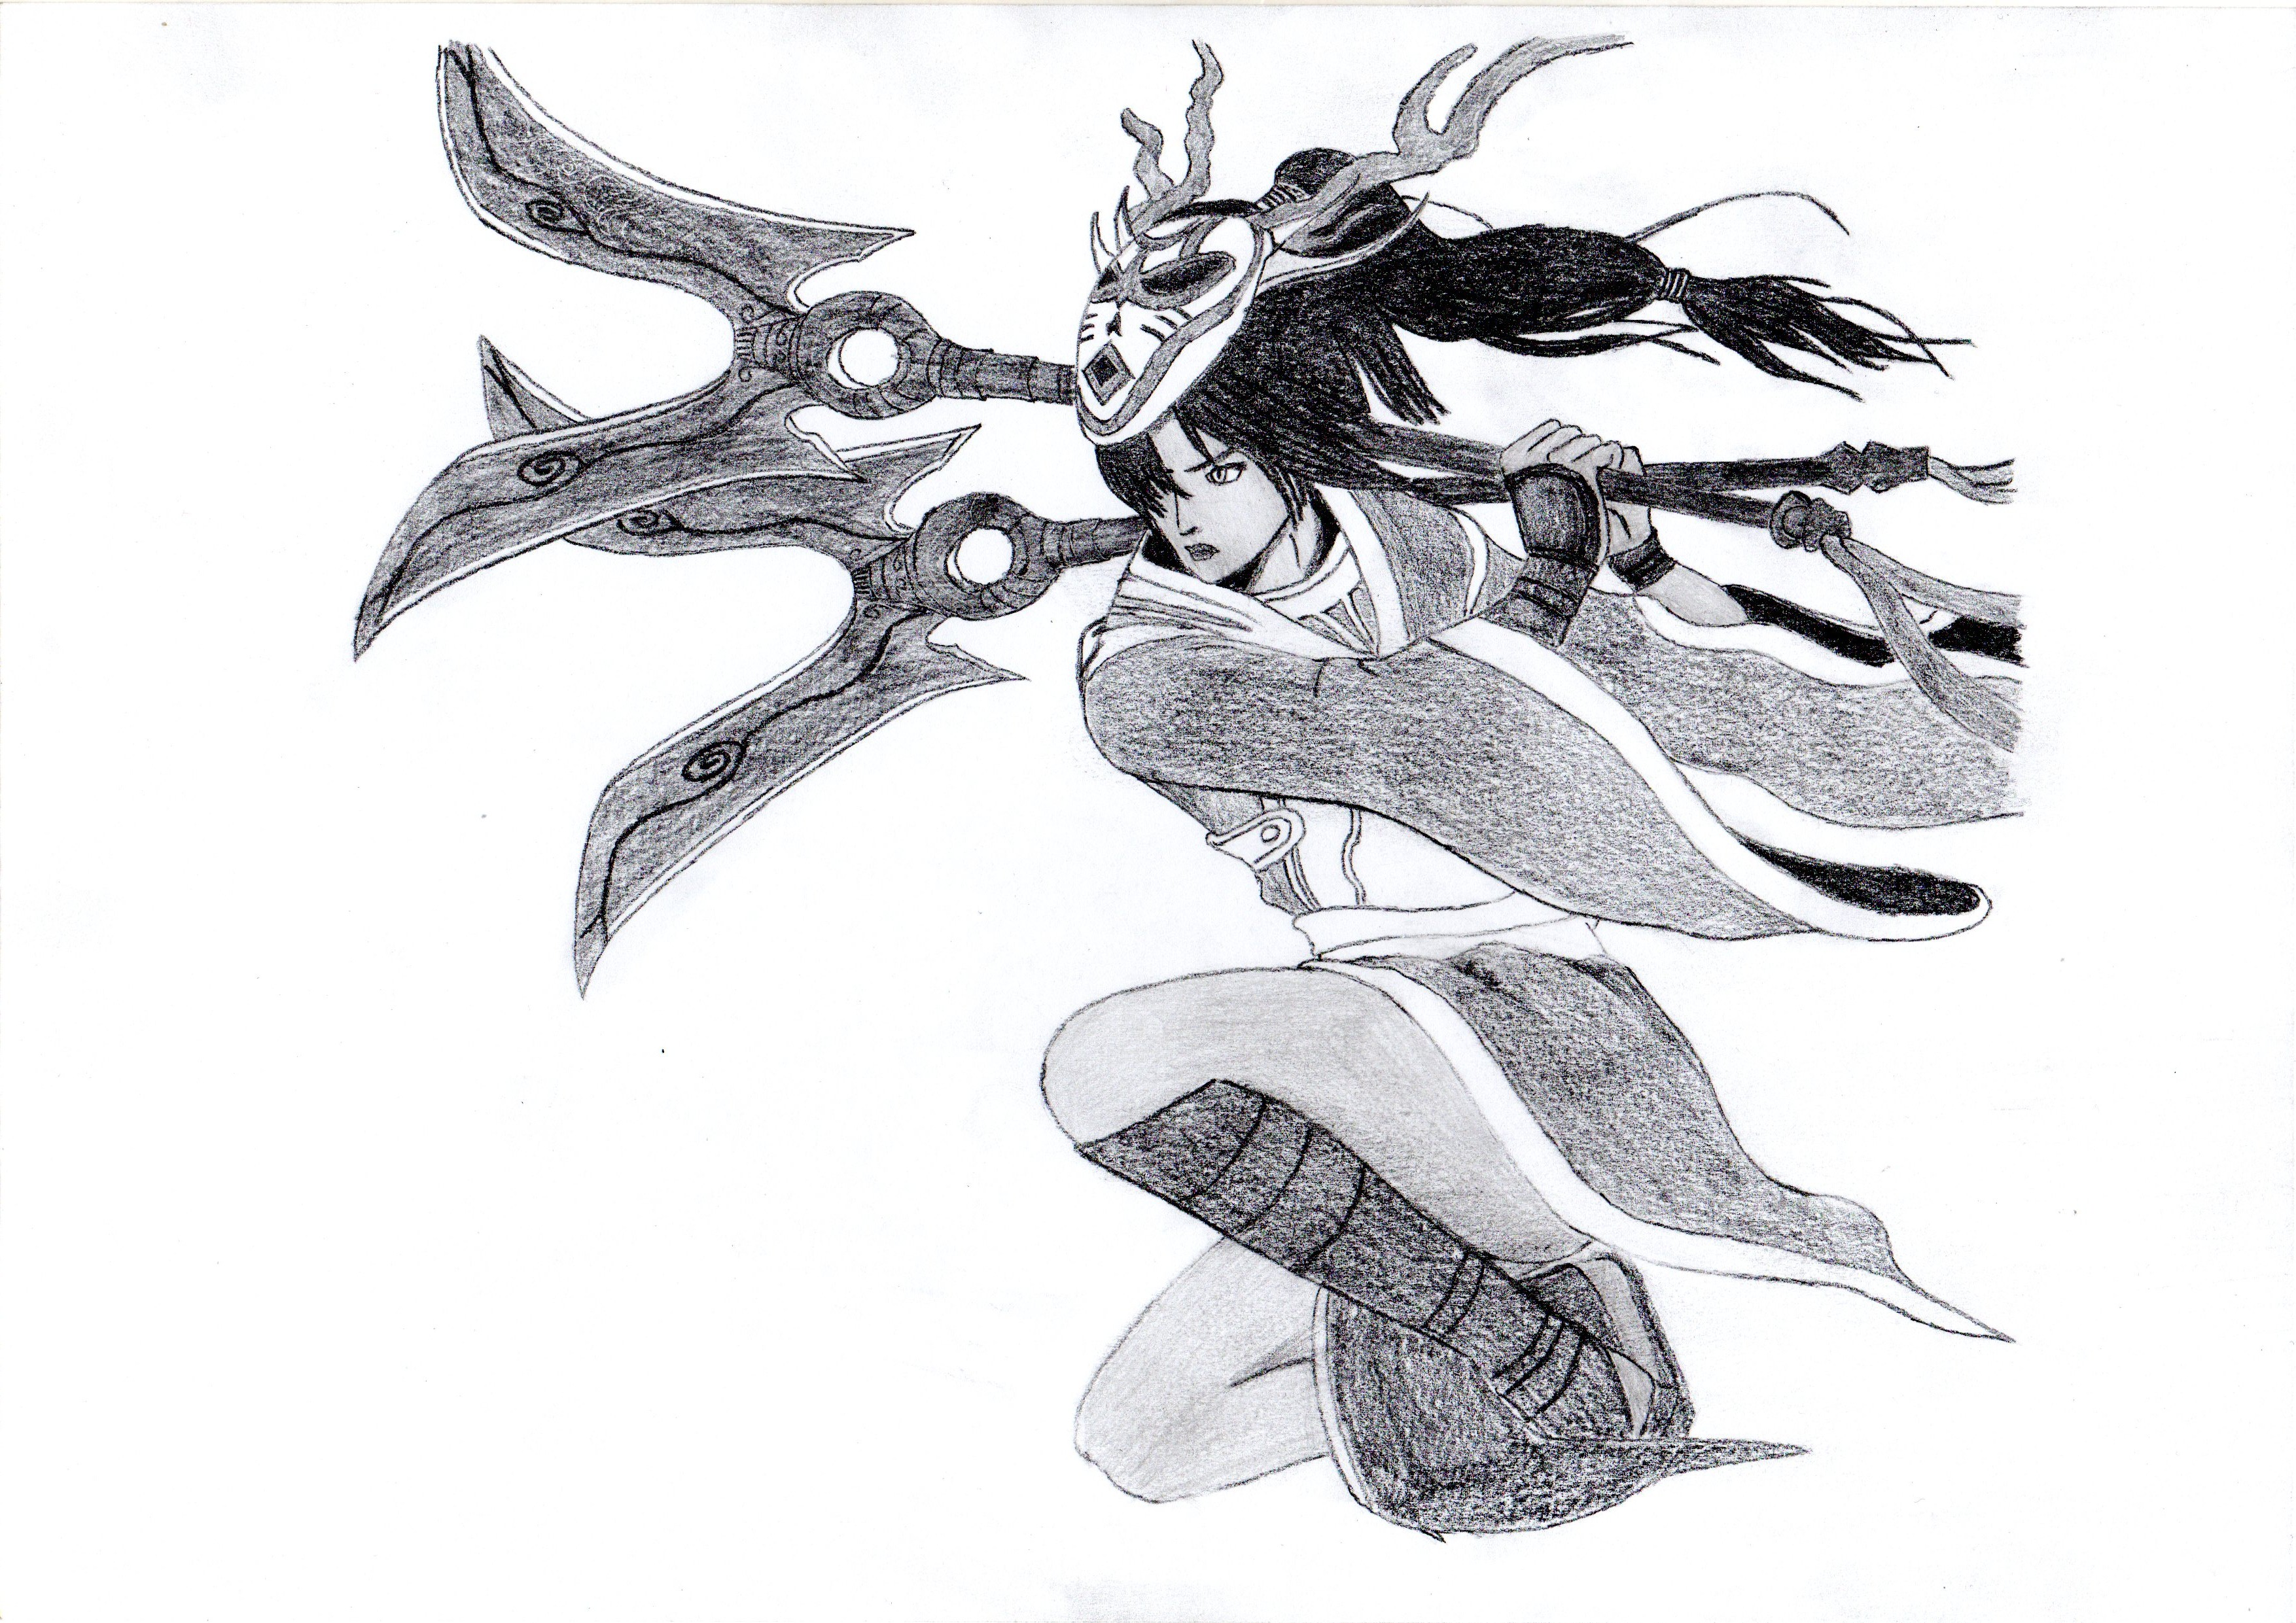 Line Art Xl 2012 : Akali the fist of shadow blood moon edition by origamisxl on